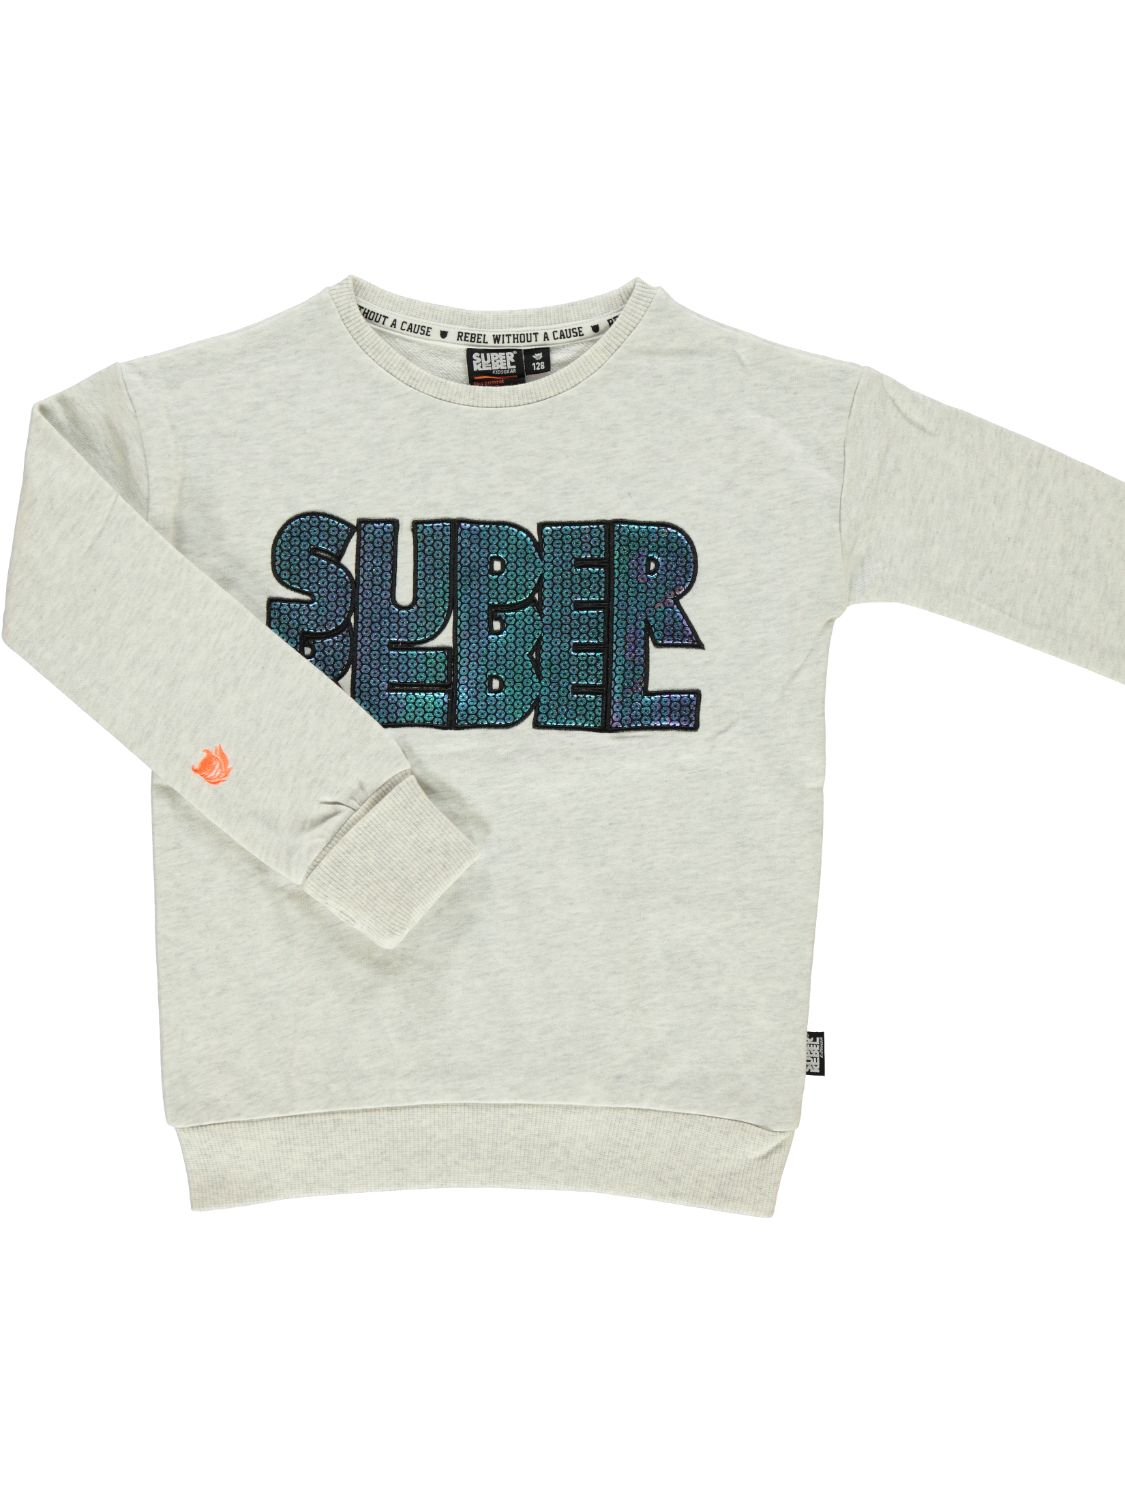 Super Rebel Sweater